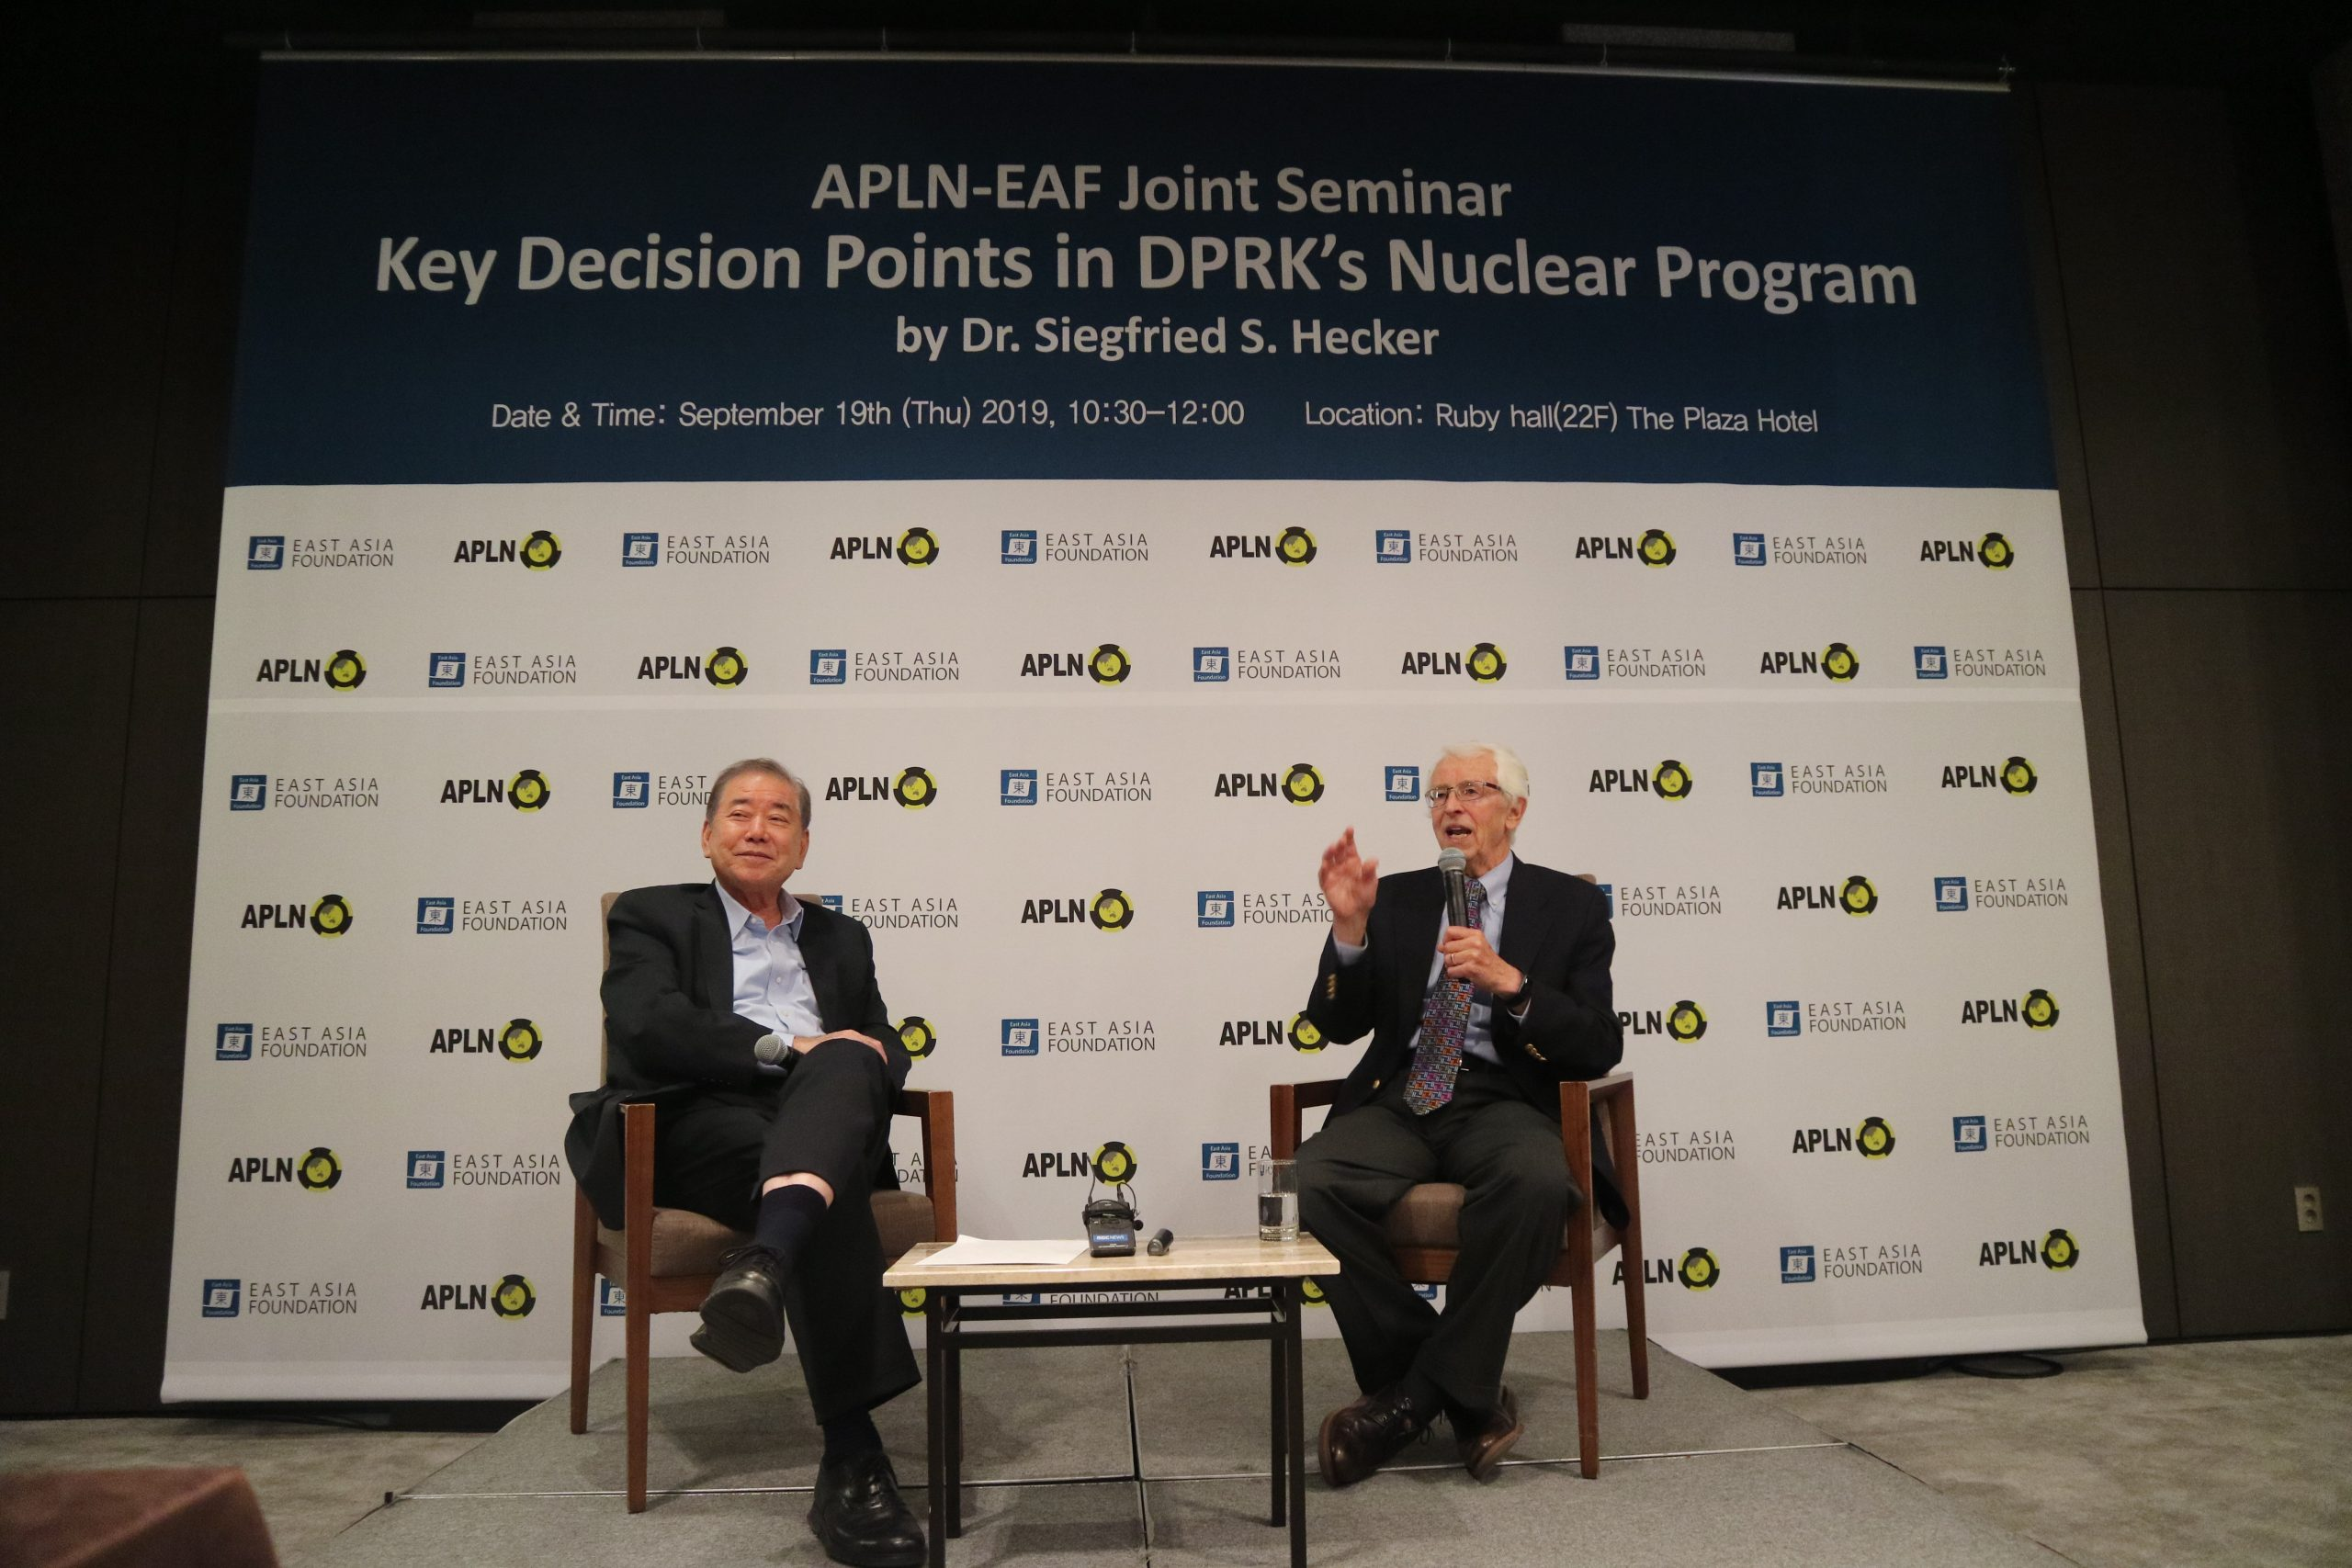 APLN-EAF Joint Seminar on Key Decision Points in DPRK's Nuclear Program